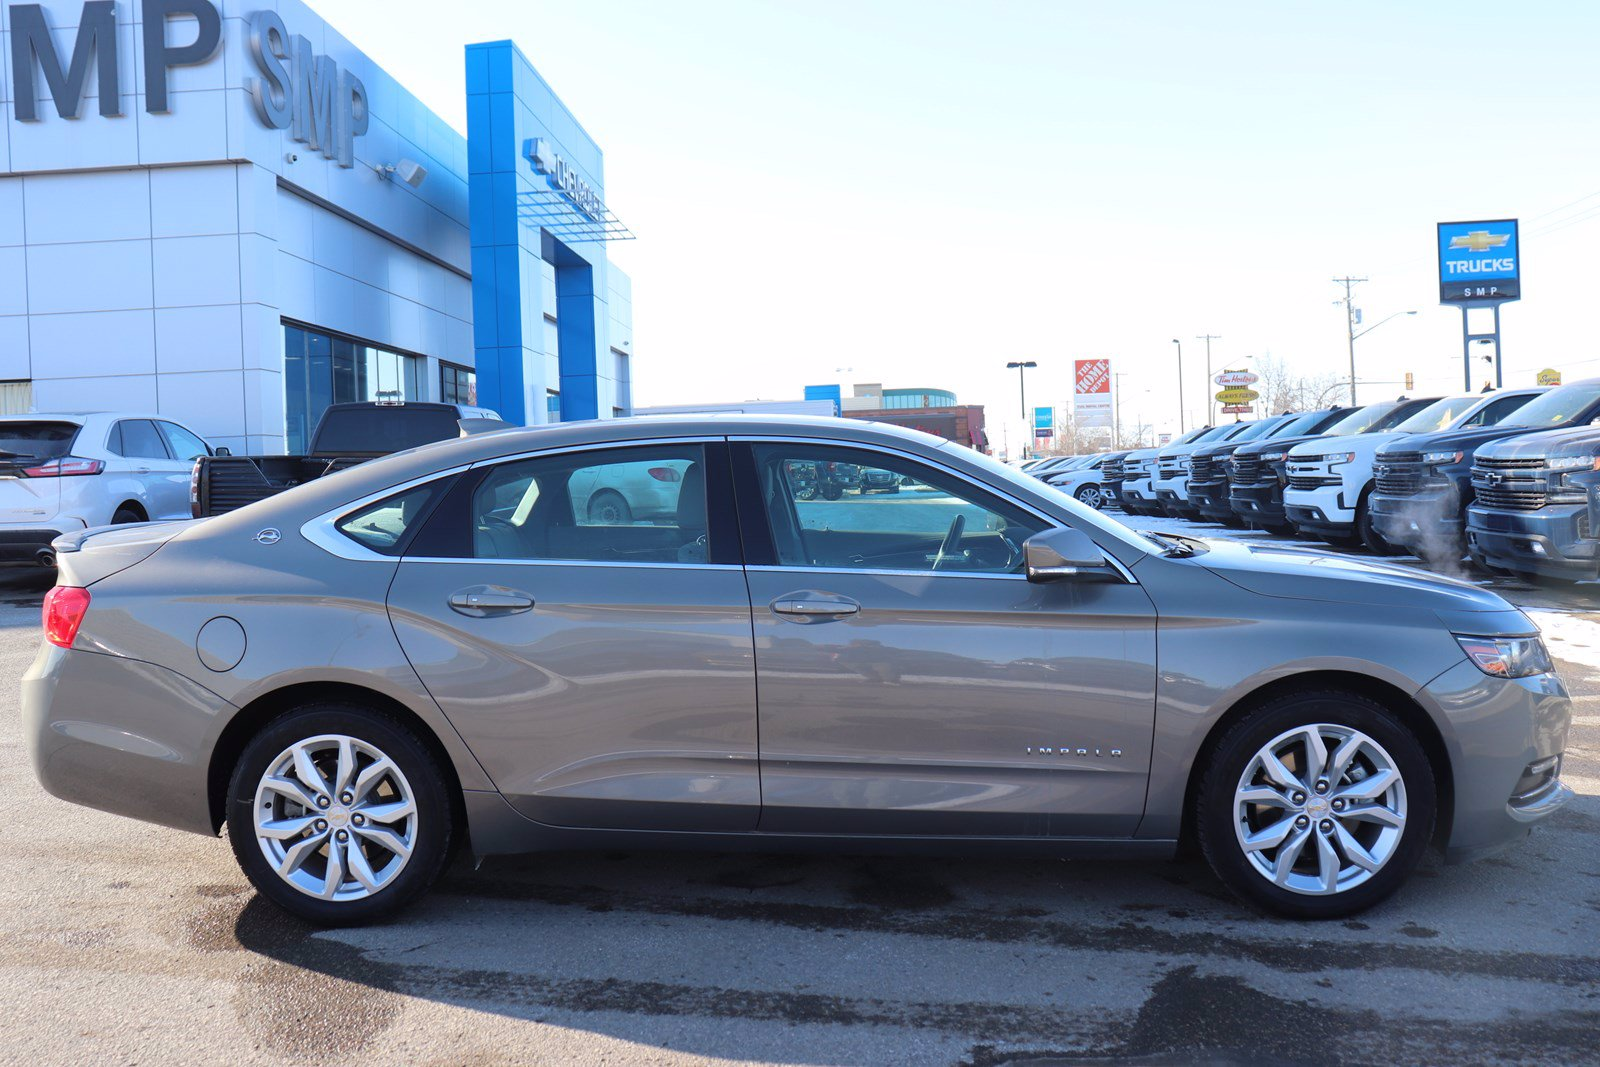 Certified Pre-Owned 2019 Chevrolet Impala LT- Leather, Sunroof, Heated Seats, Remote Start